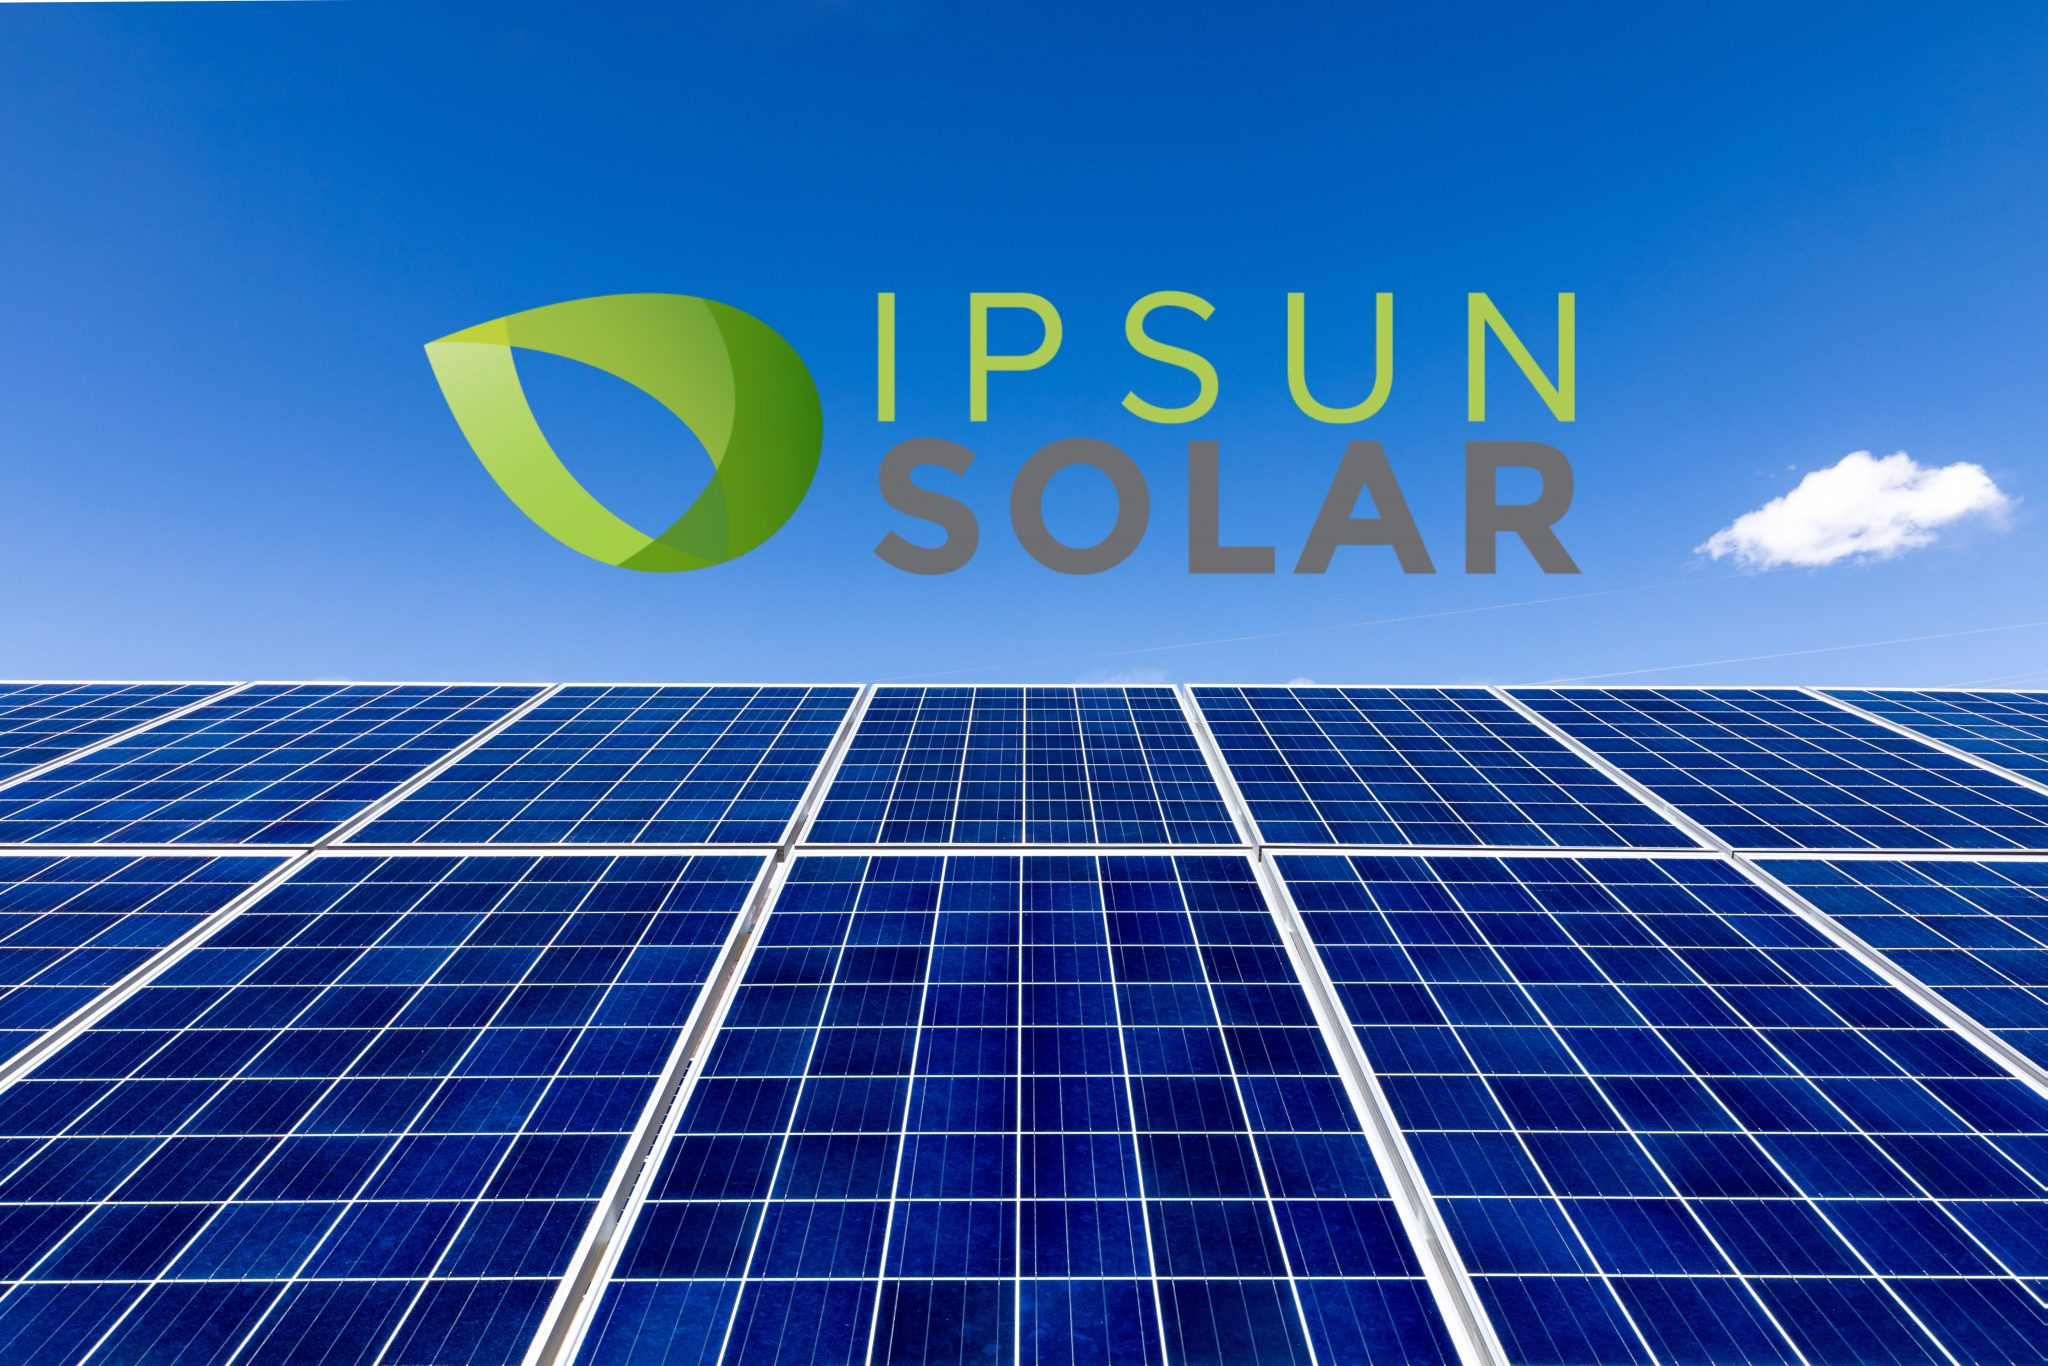 Ipsun Solar named one of the Best Solar companies in 2019 by Earthtechling